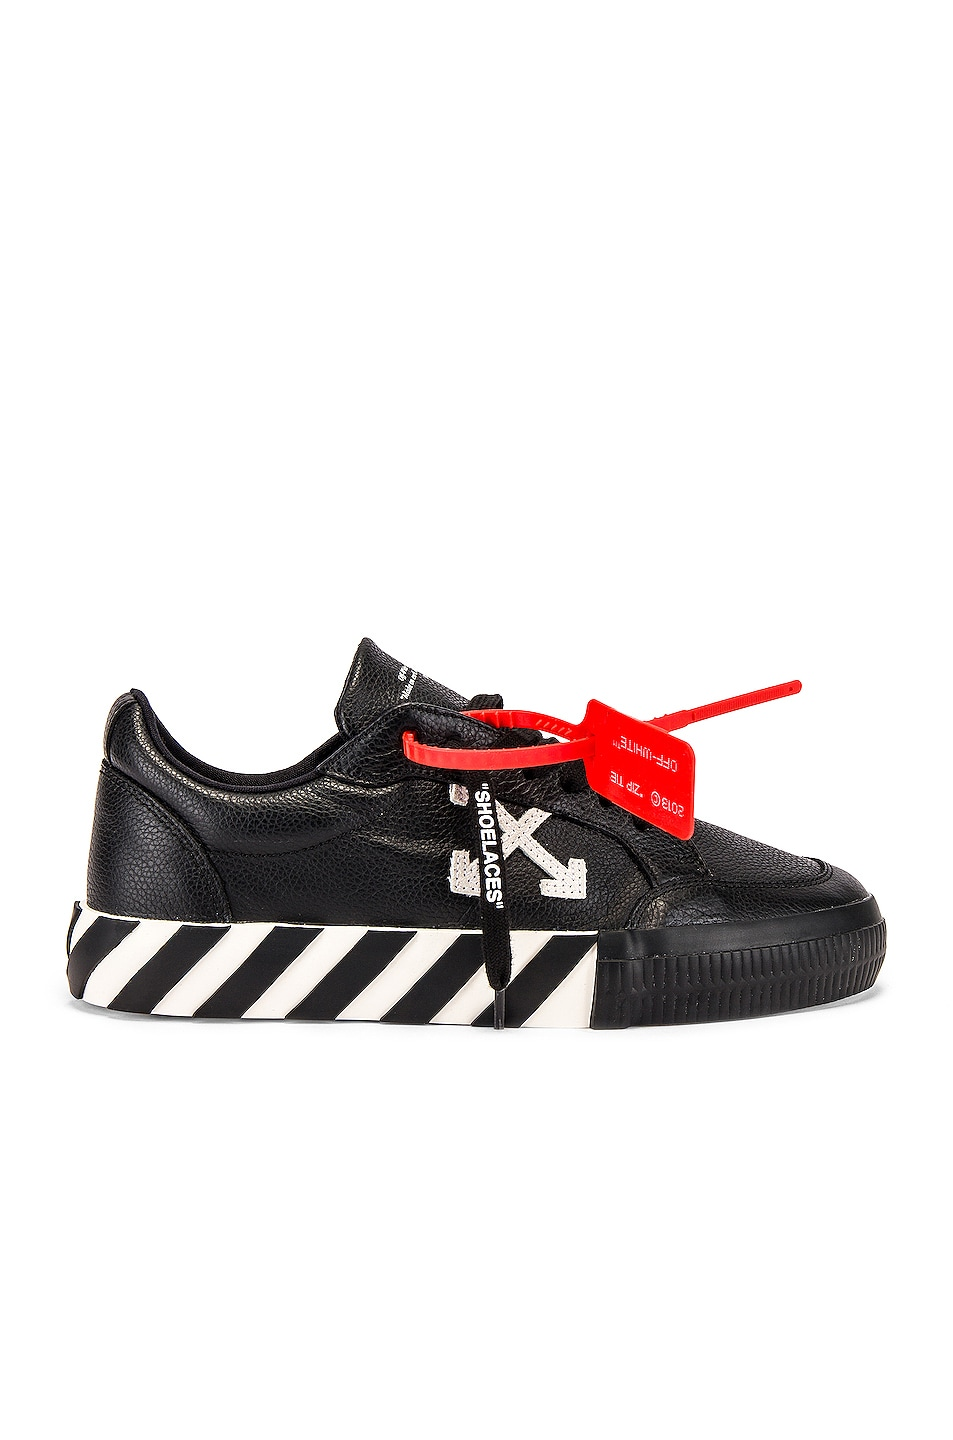 Image 2 of OFF-WHITE Low Vulcanized Sneaker in Black & White